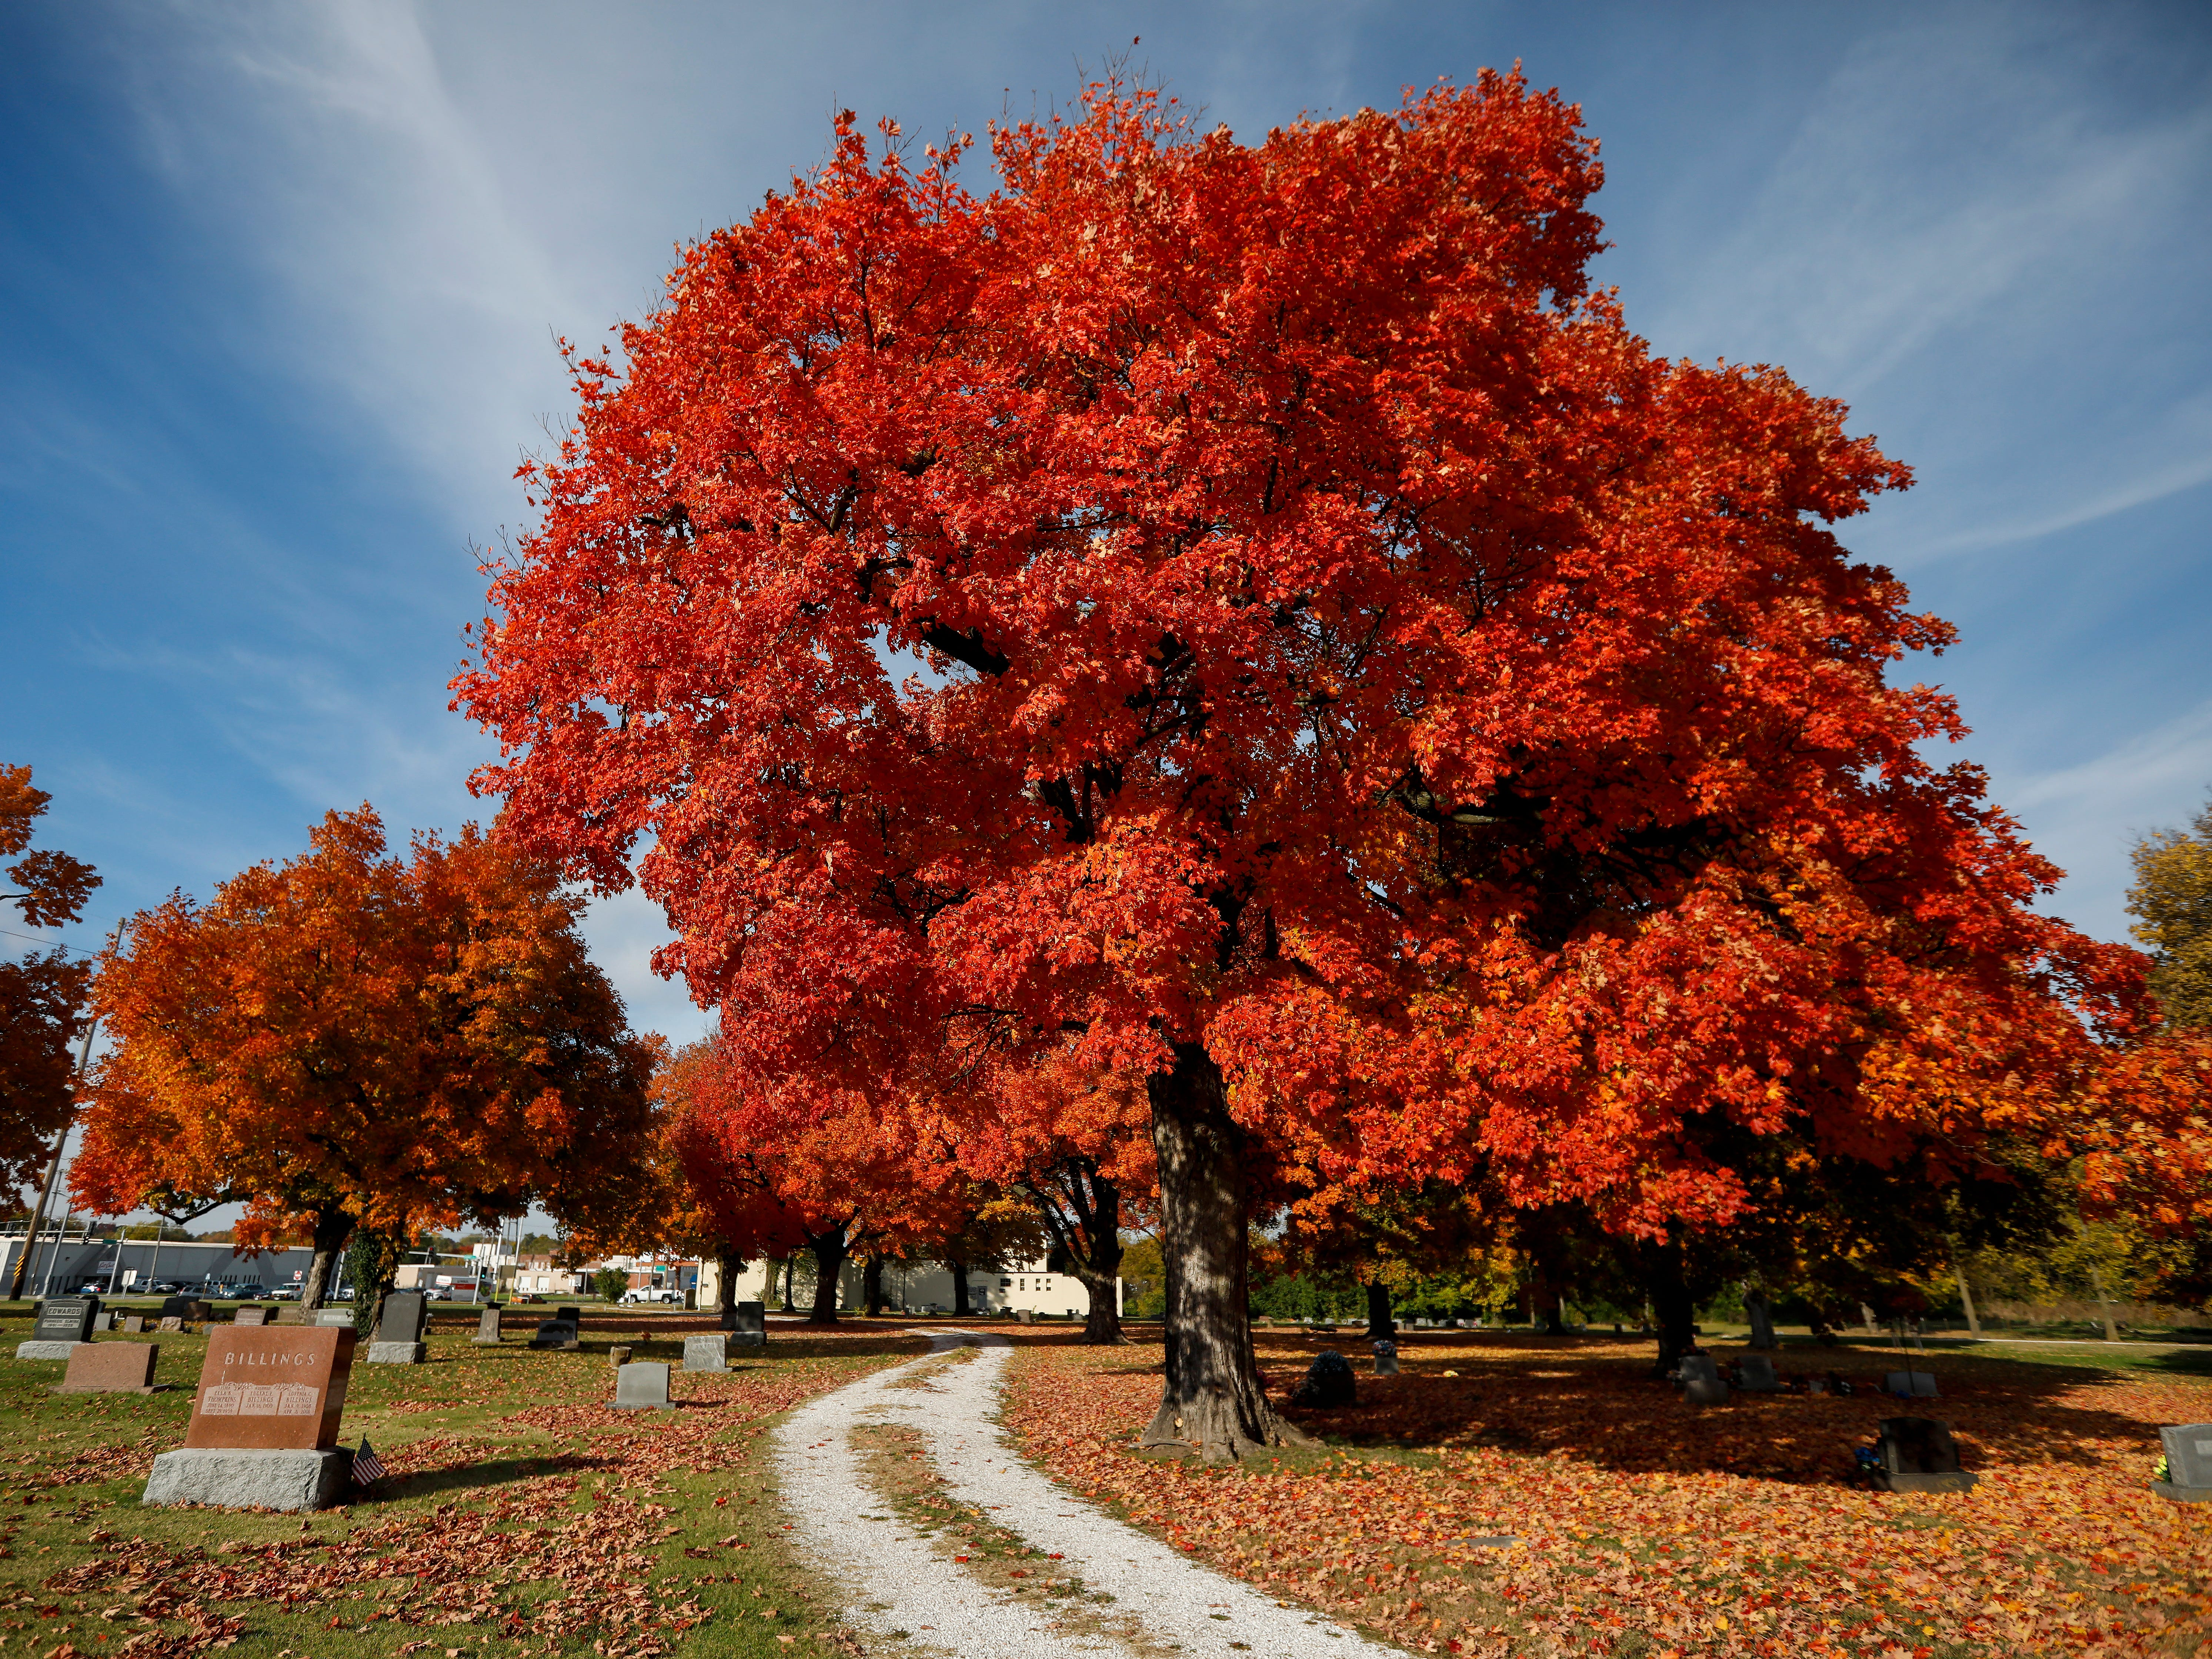 The trees are aglow with color at Lincoln Memorial Cemetery on Tuesday, Oct. 30, 2018.